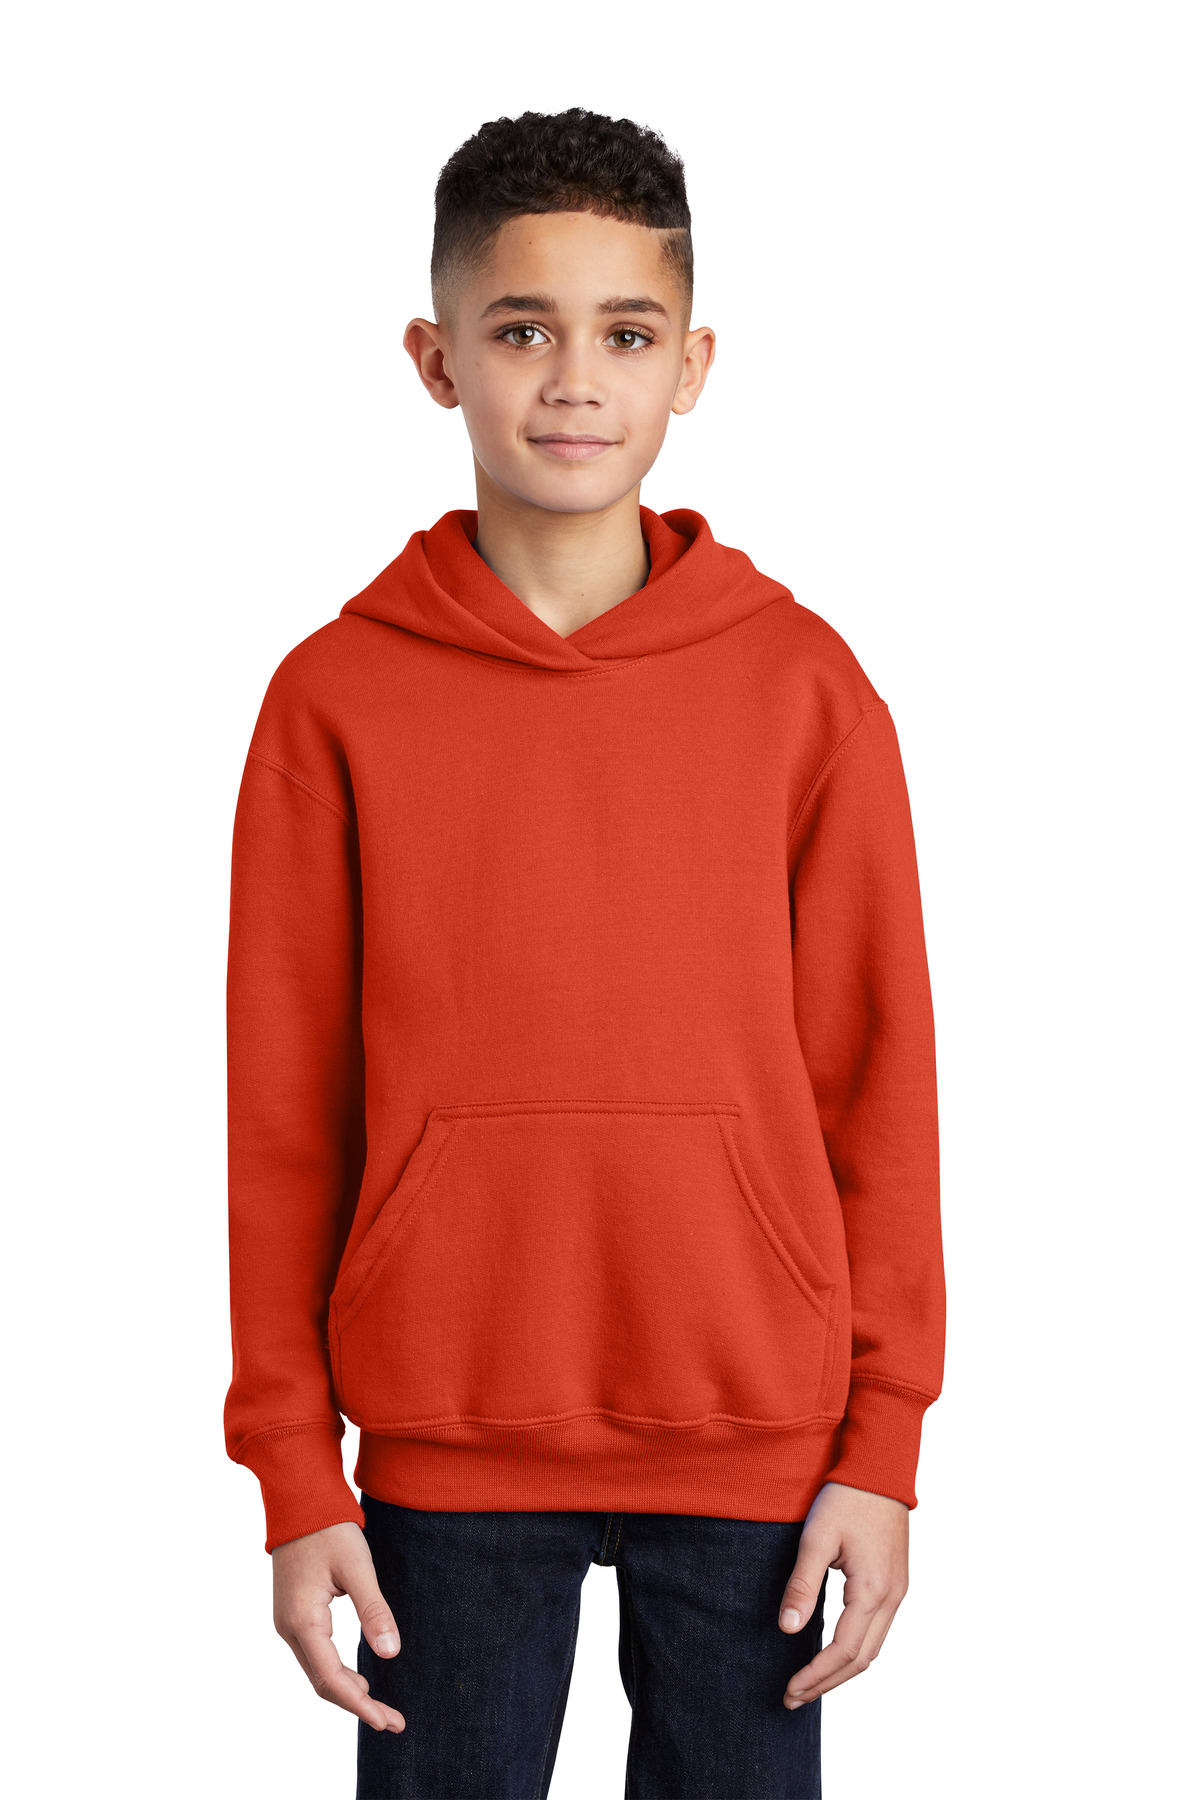 Port & Company ®  - Youth Core Fleece Pullover Hooded Sweatshirt.  PC90YH - Orange